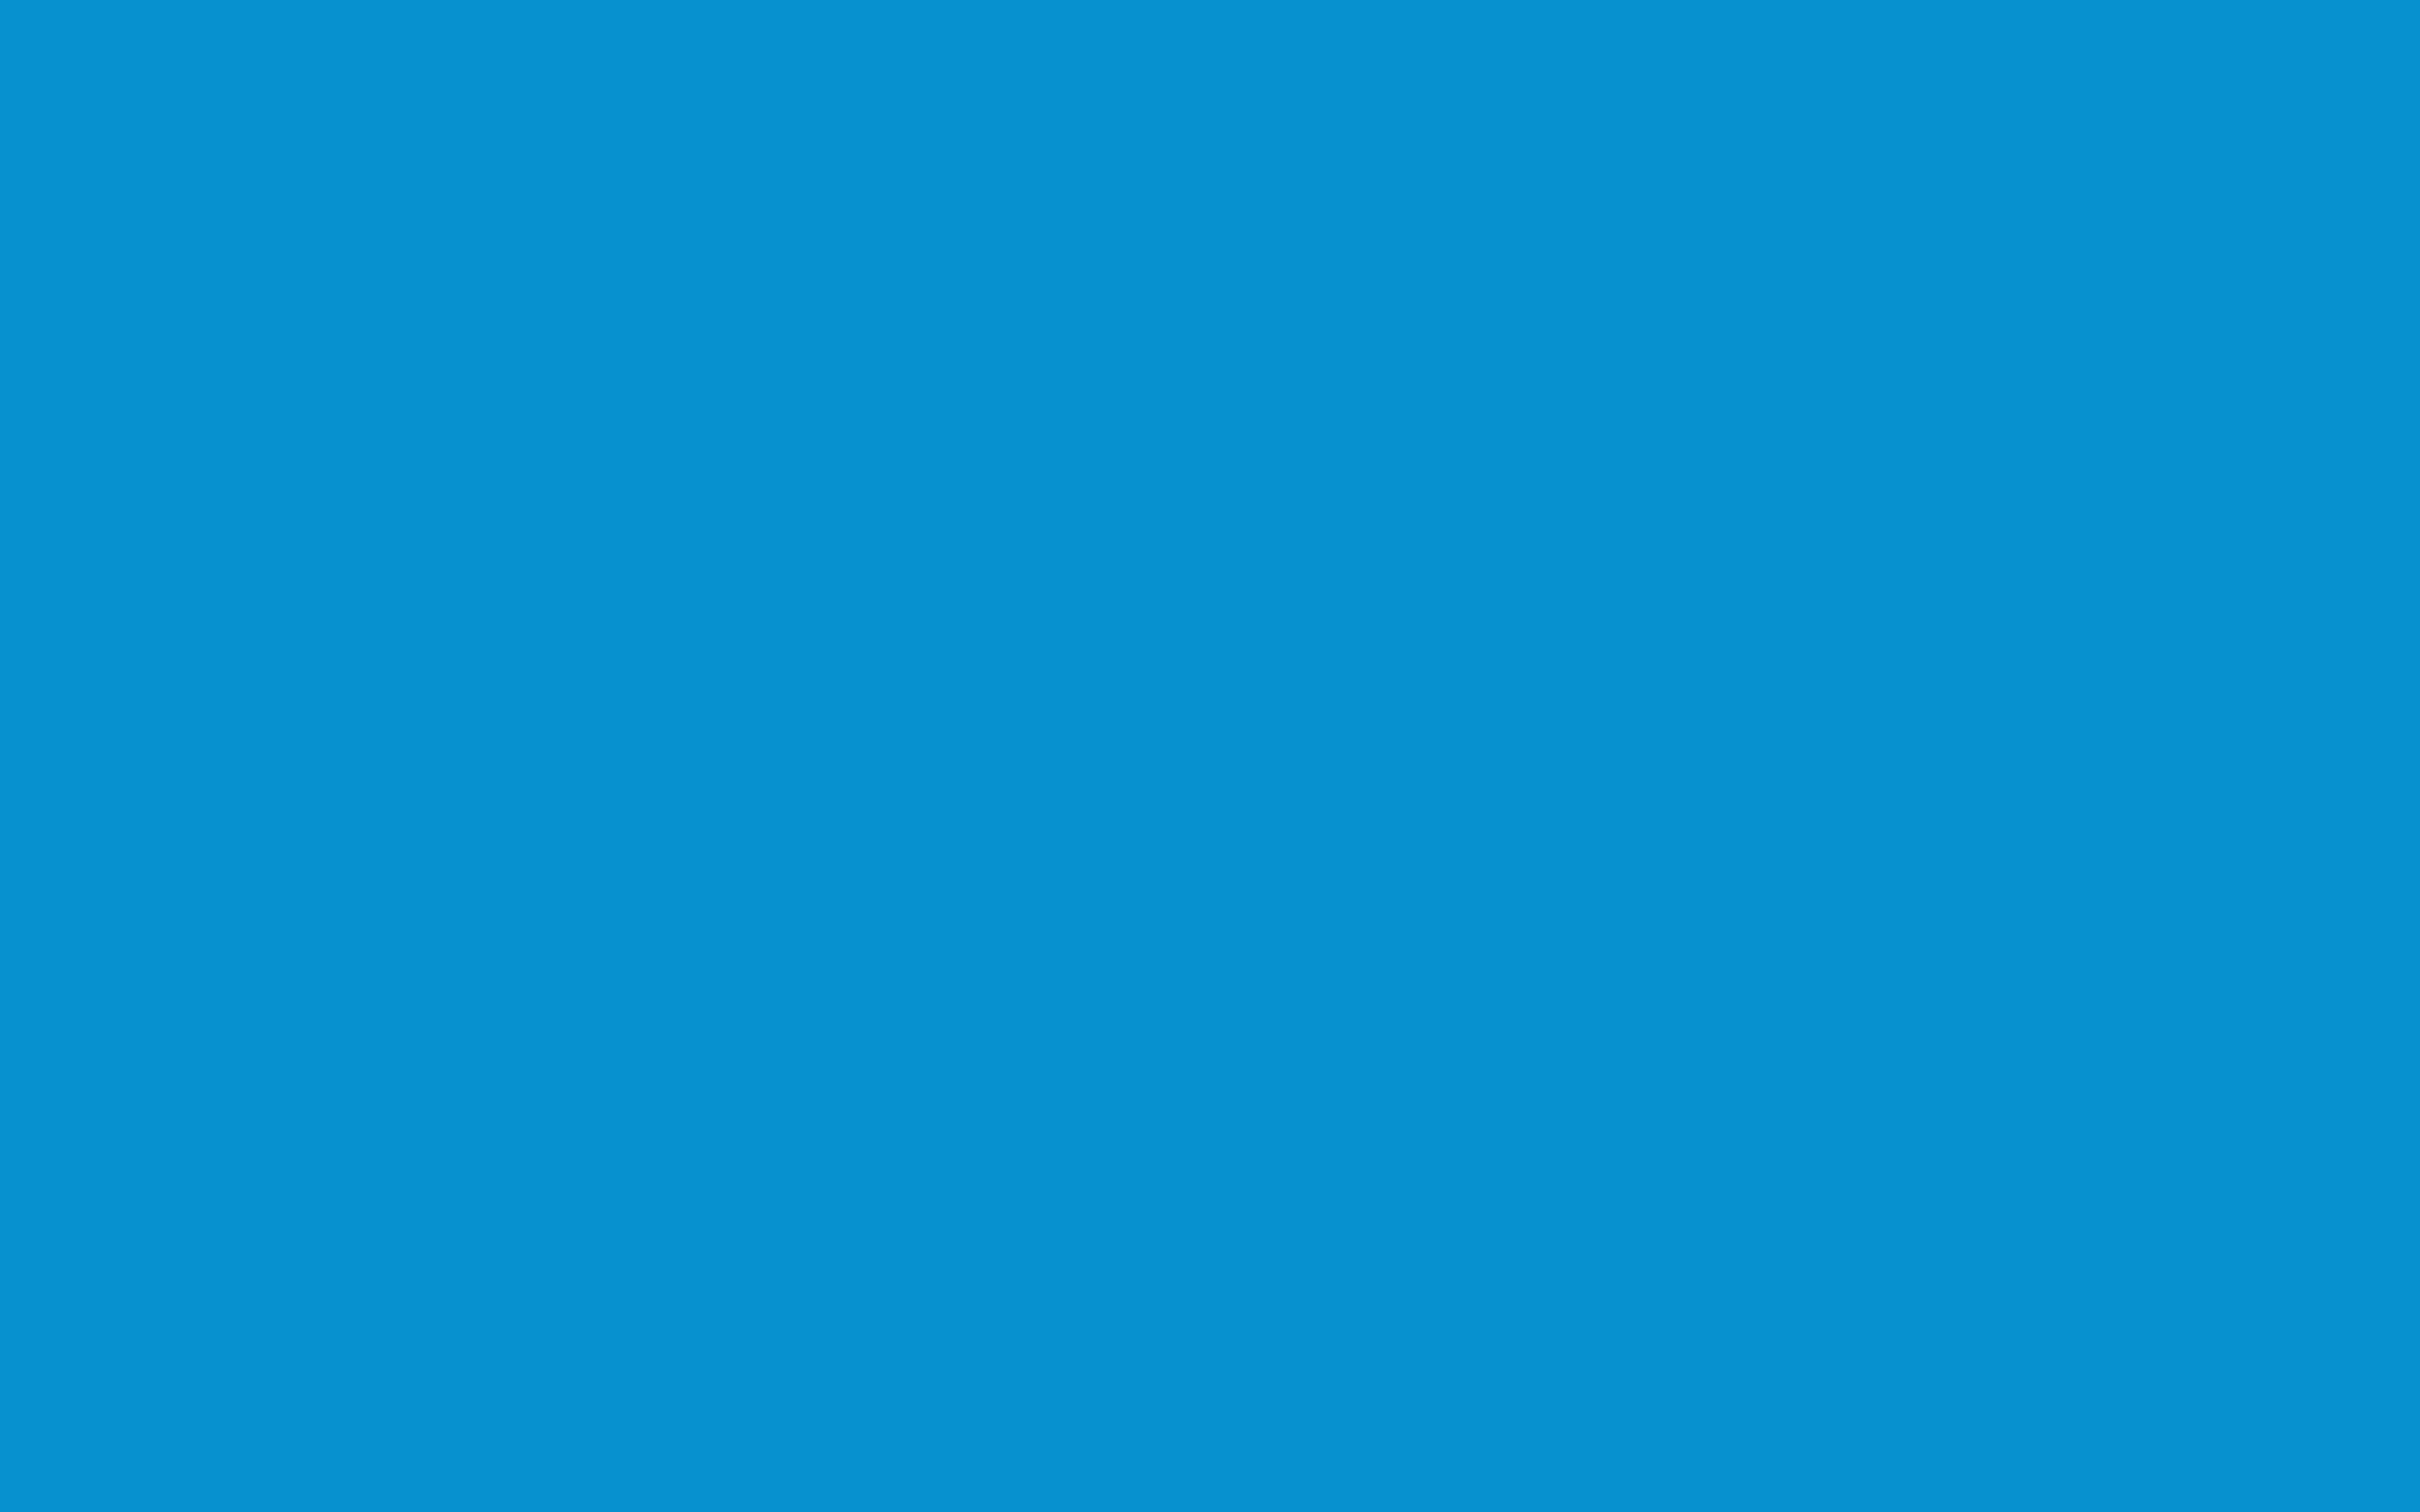 2560x1600 Rich Electric Blue Solid Color Background